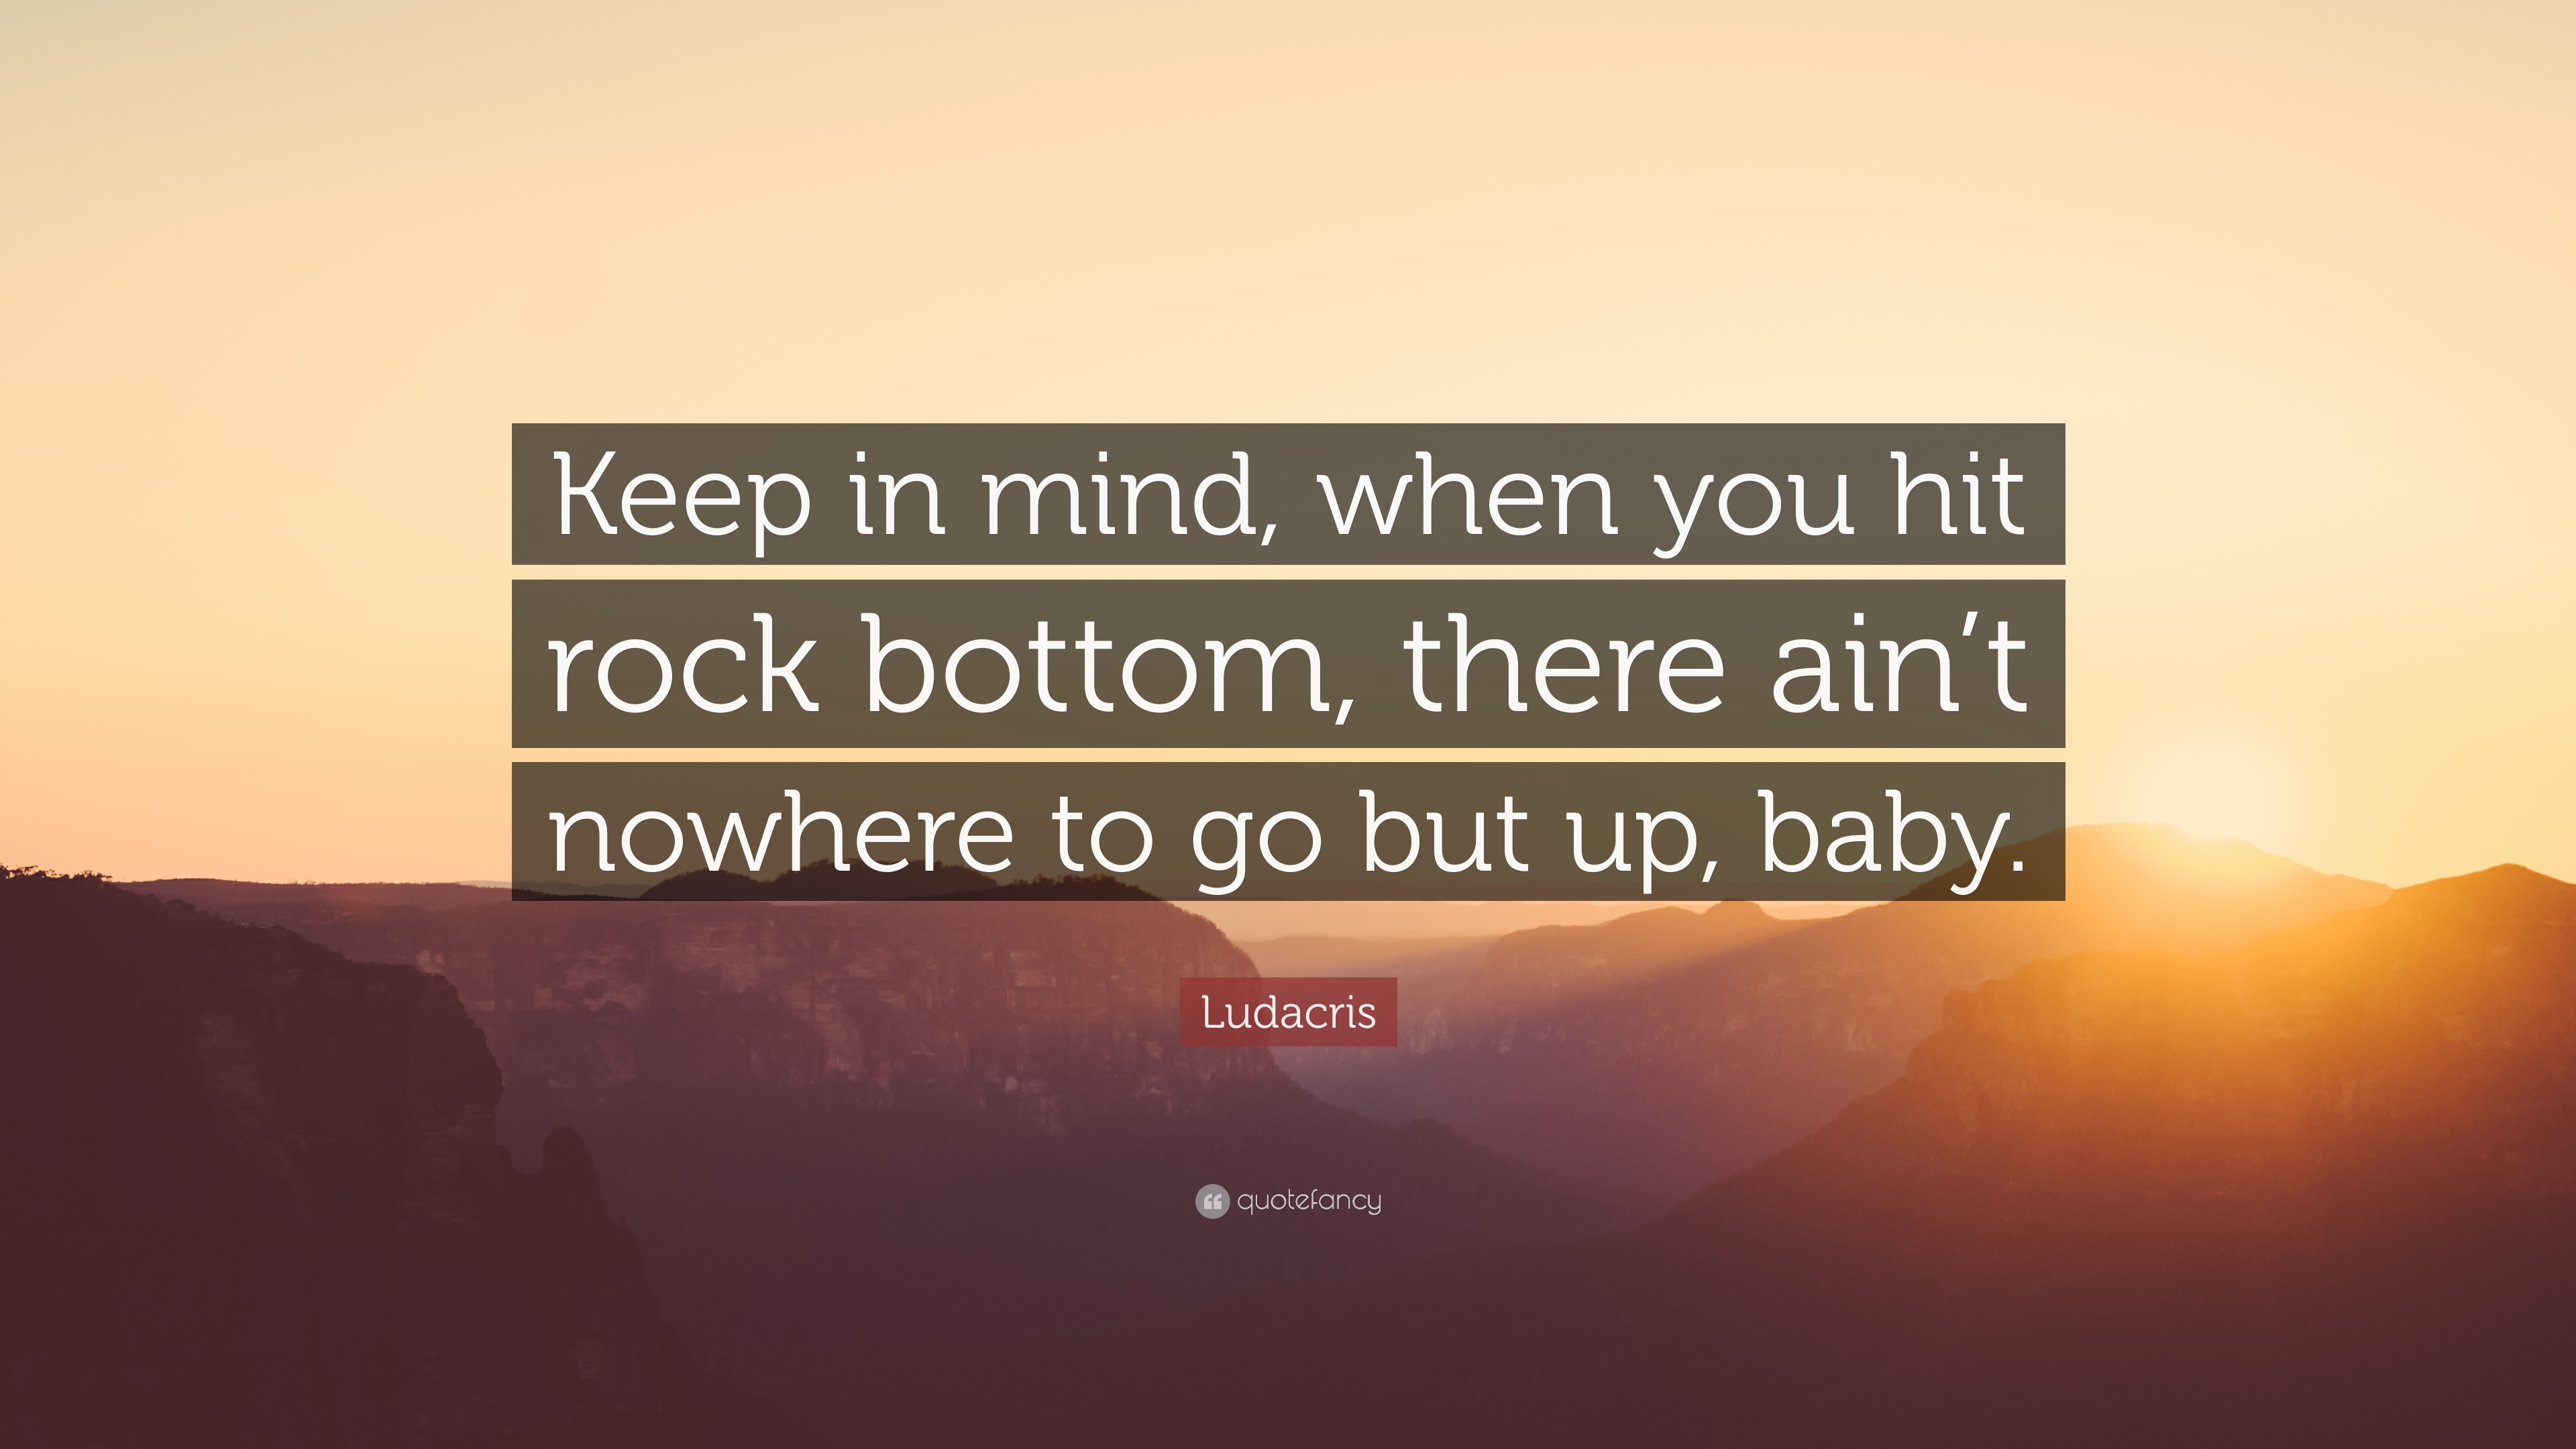 Ludacris Quote Keep In Mind When You Hit Rock Bottom There Aint